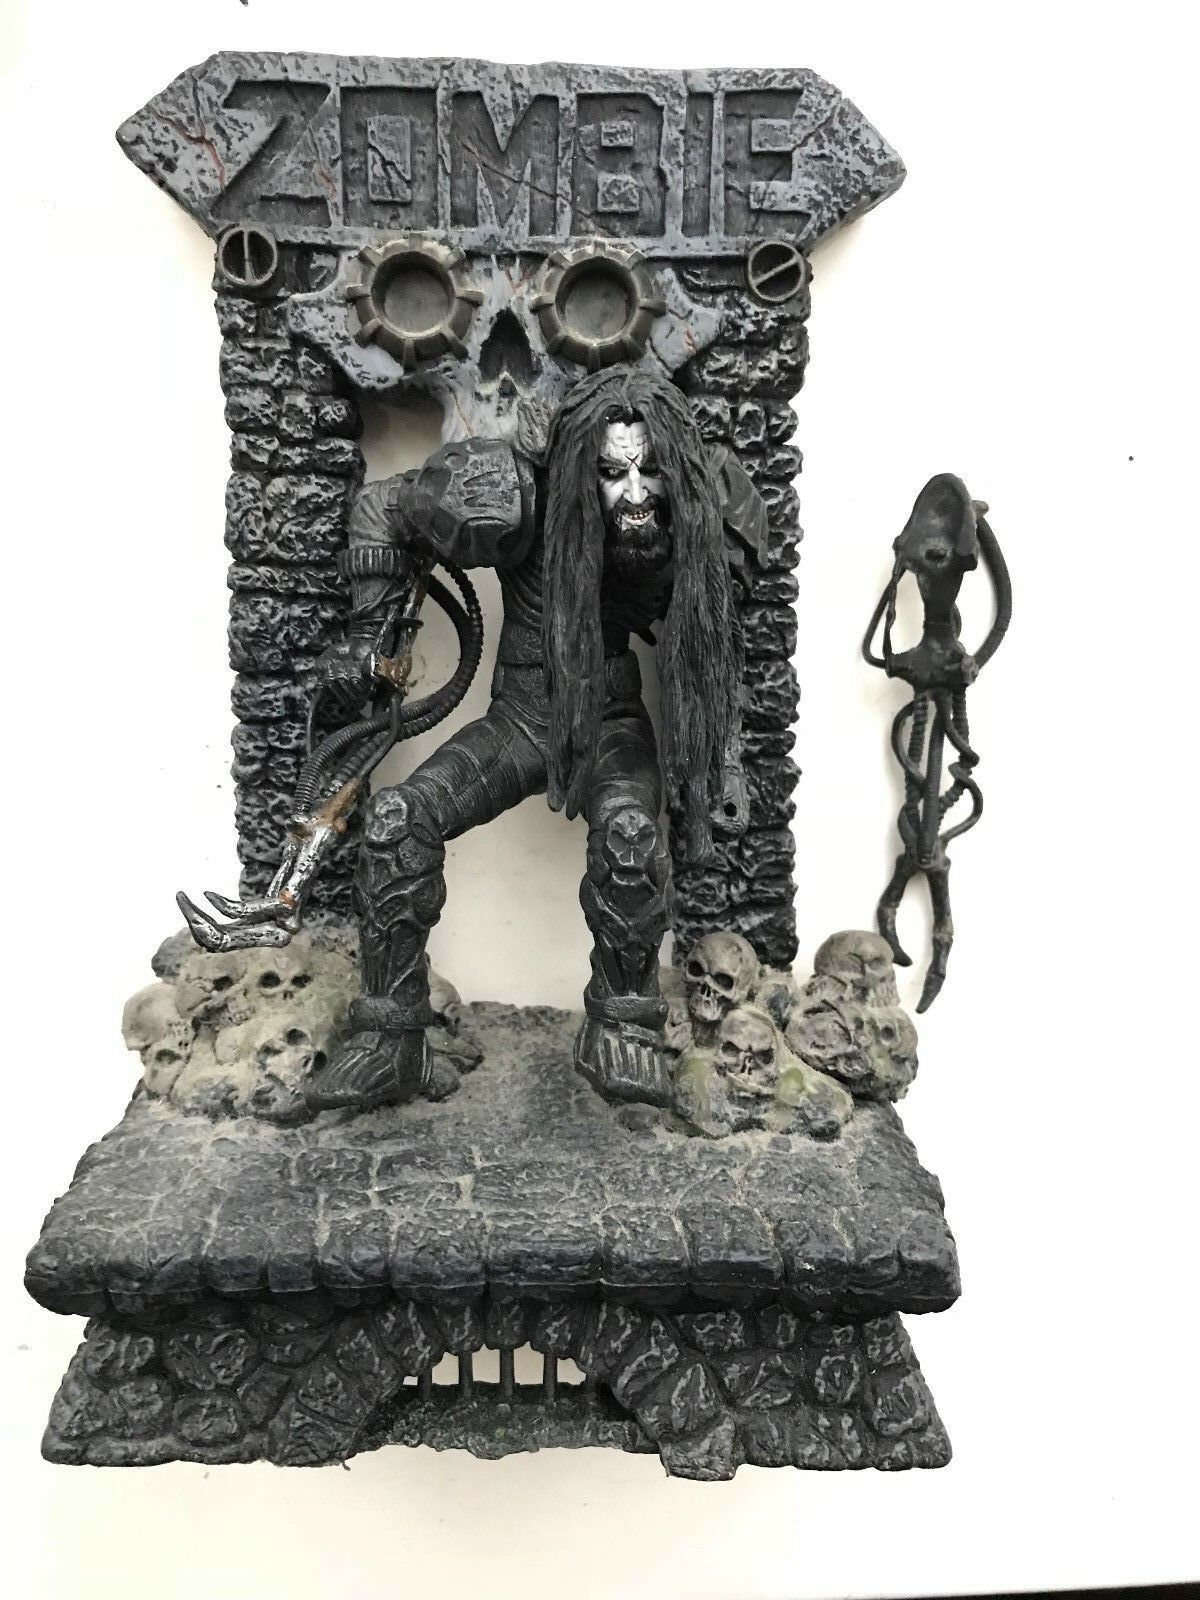 MCFARLANE TOYS 2000 ROB ZOMBIE SUPER STAGE ACTION FIGURE